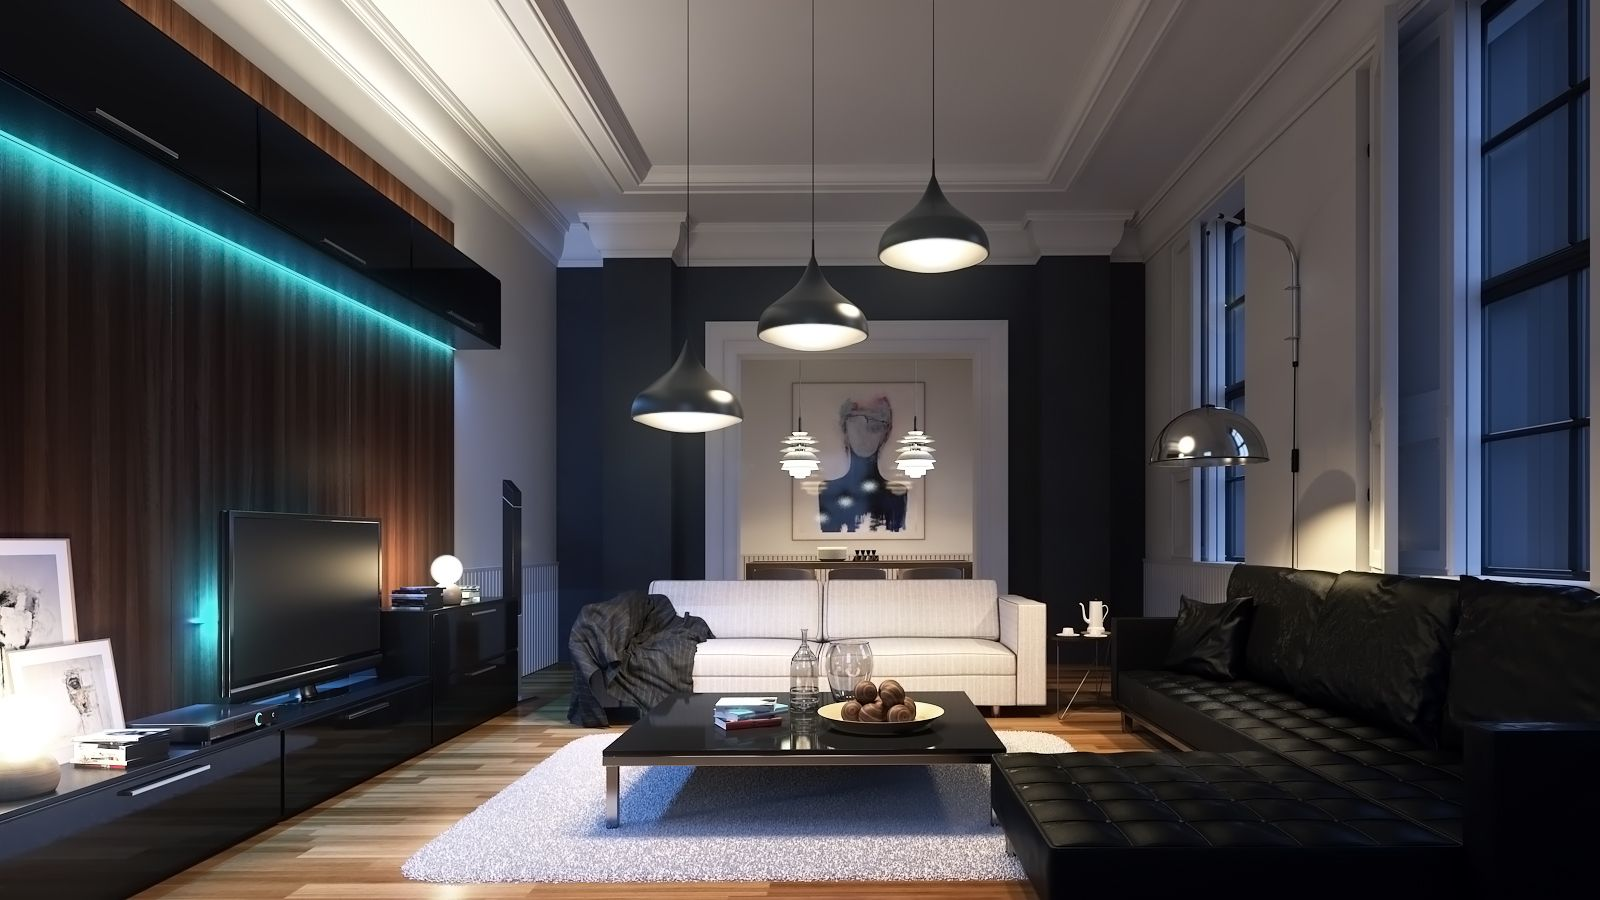 Vray 3ds Max Night Interior Making Of Part 1 Lighting